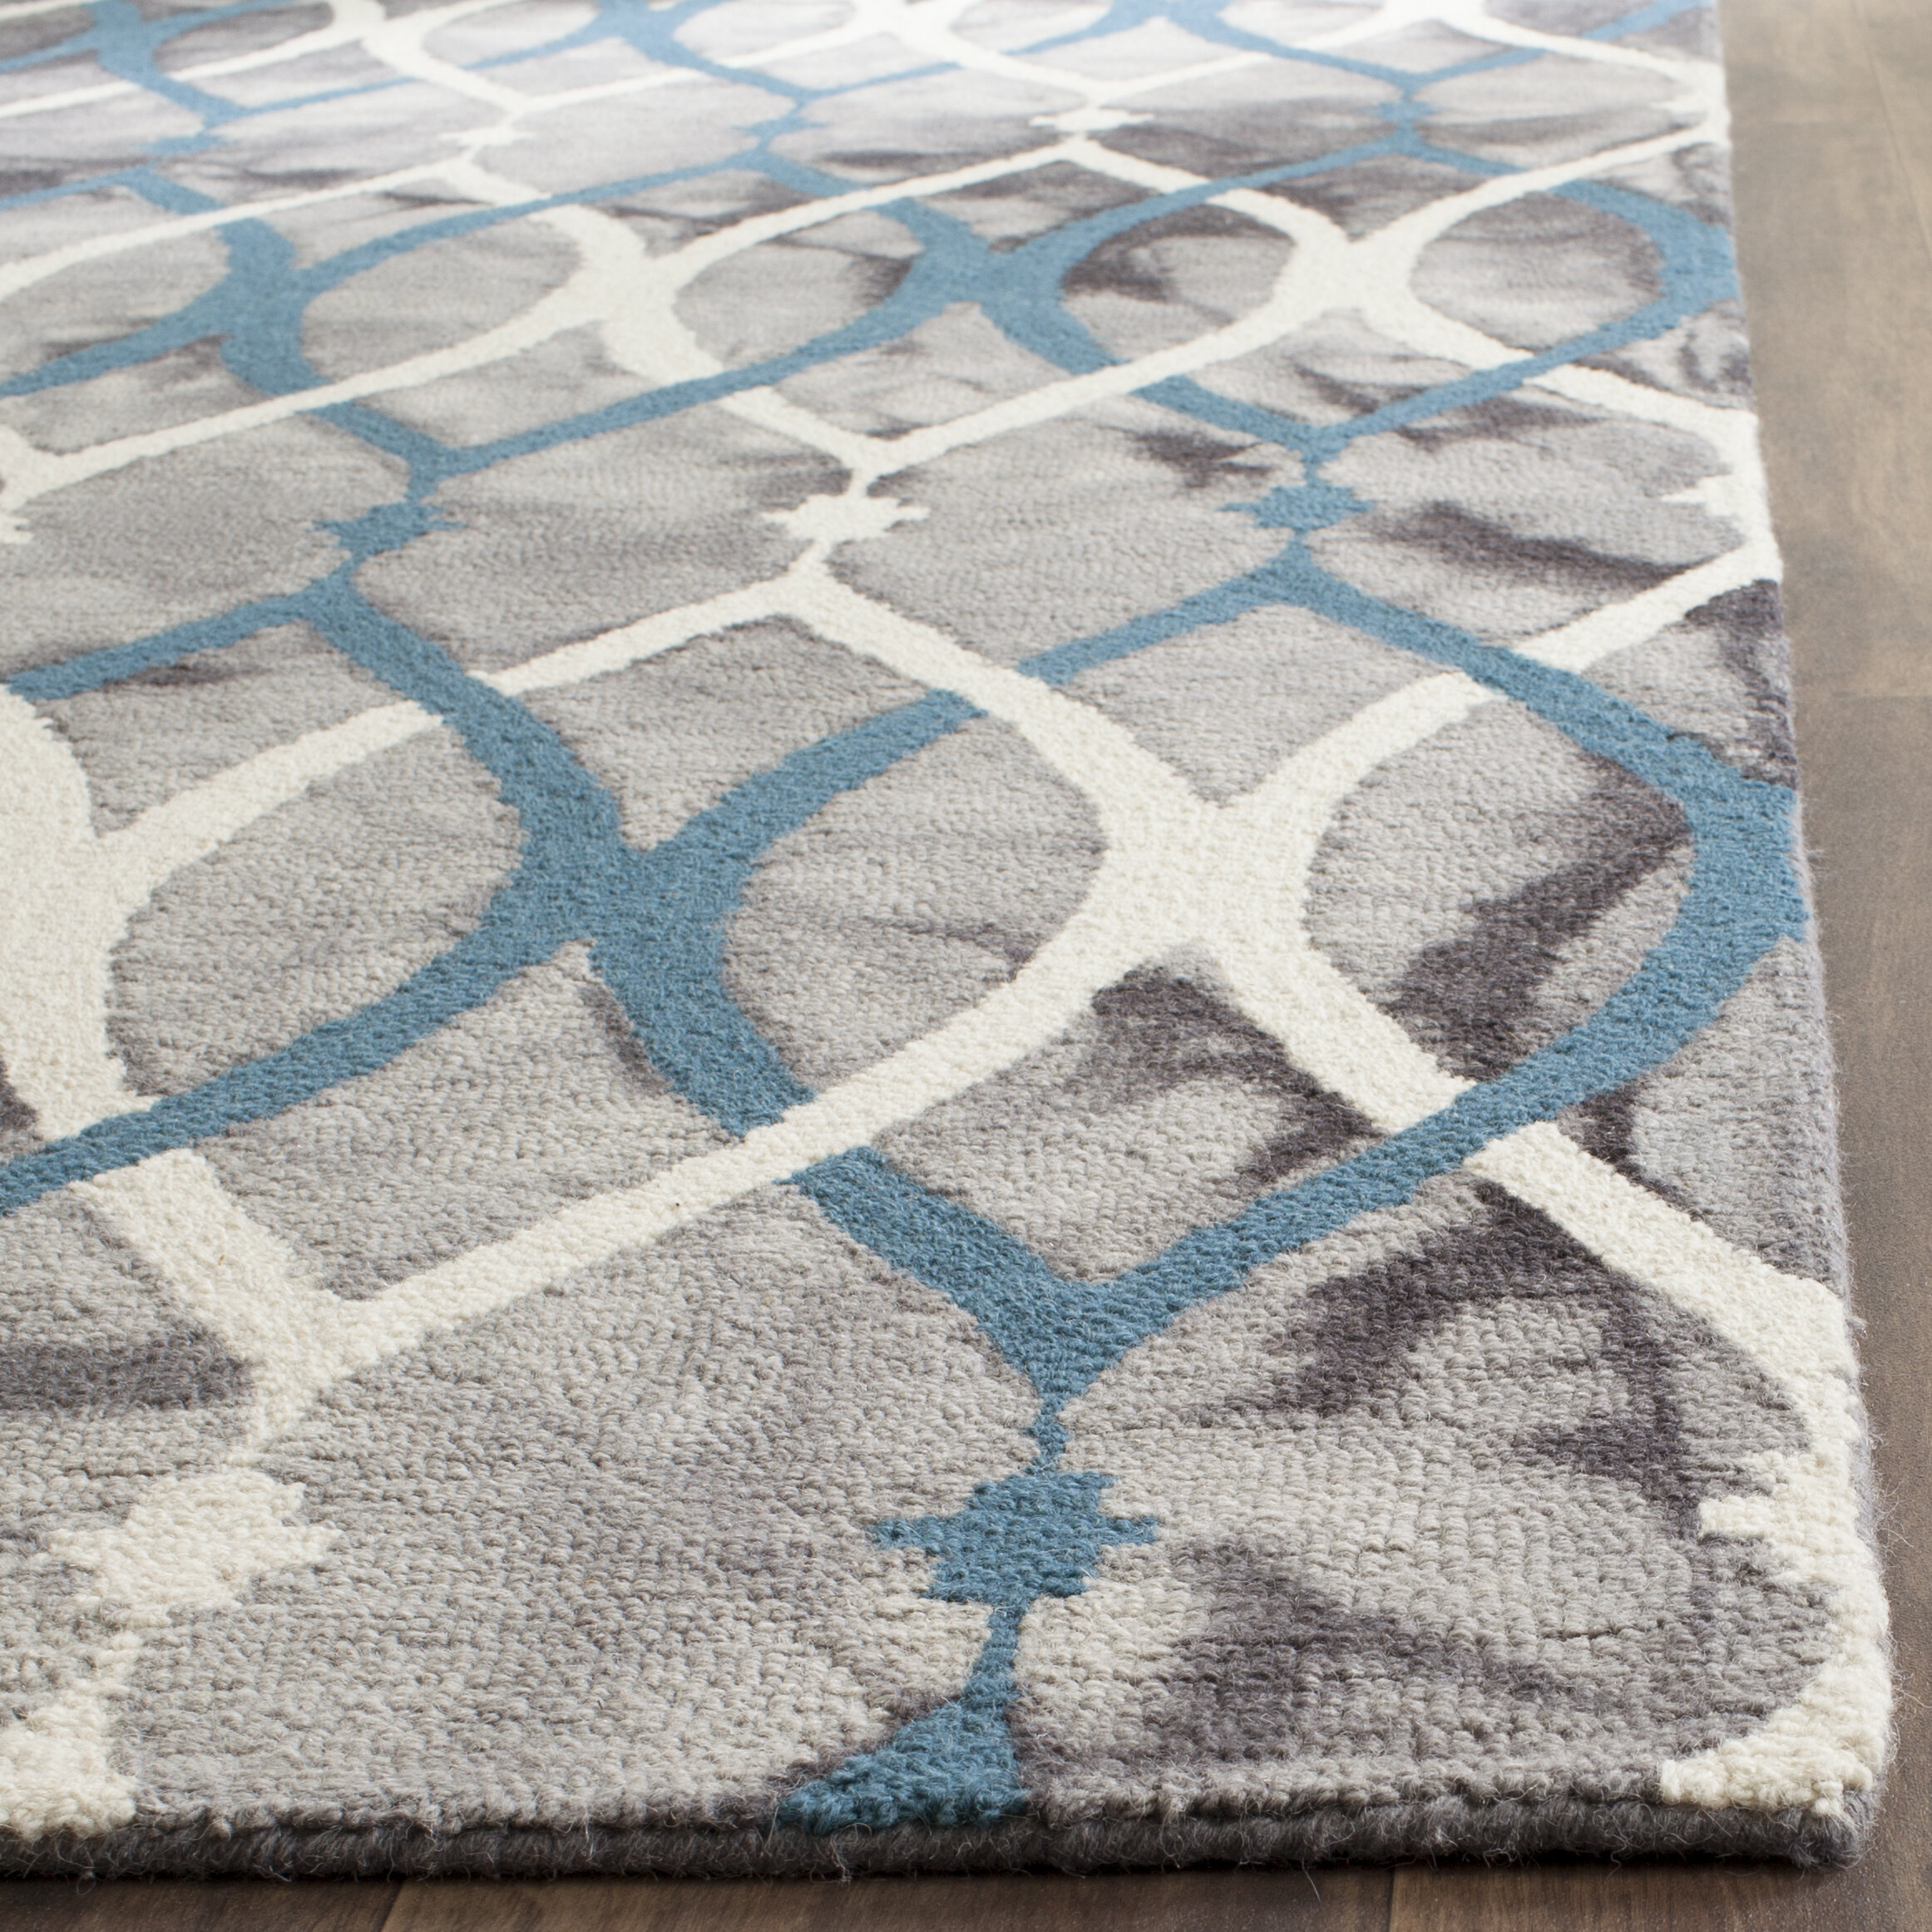 Tufted Wool Gray White Blue